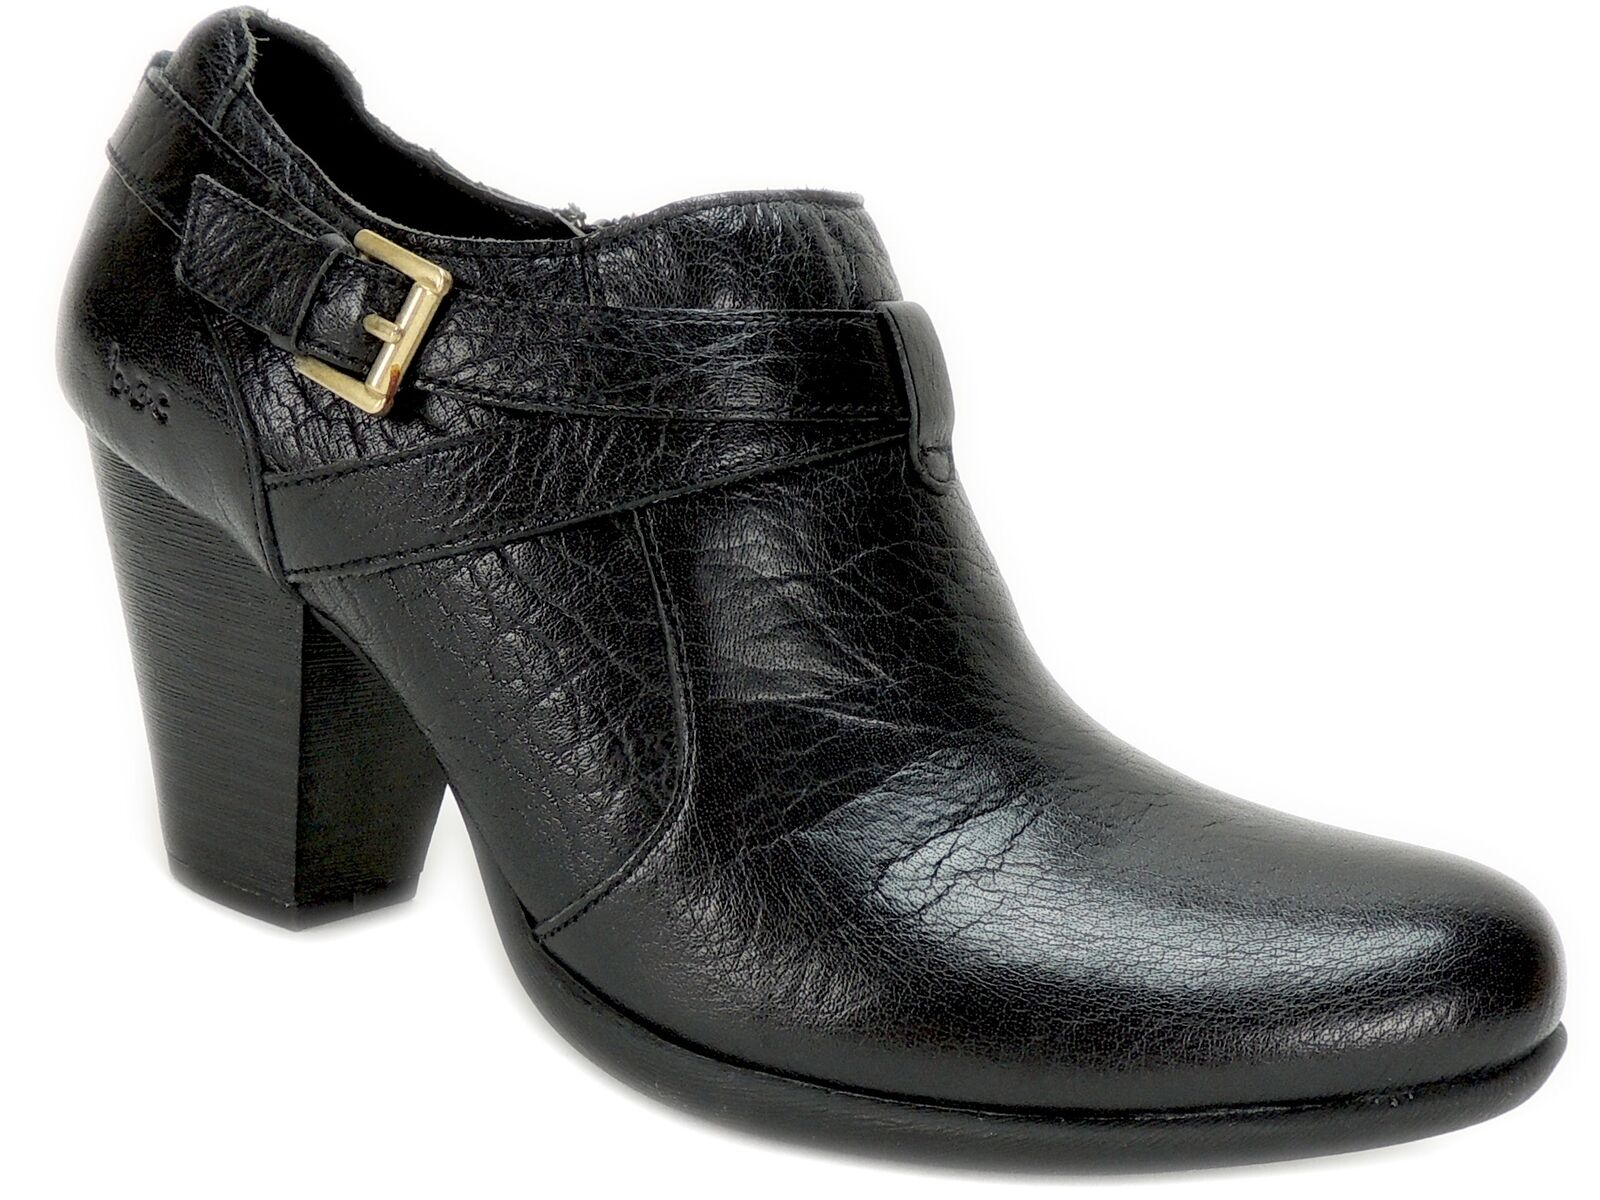 B.o.c. Women's Moore Booties Black Leather Size 6.5 M